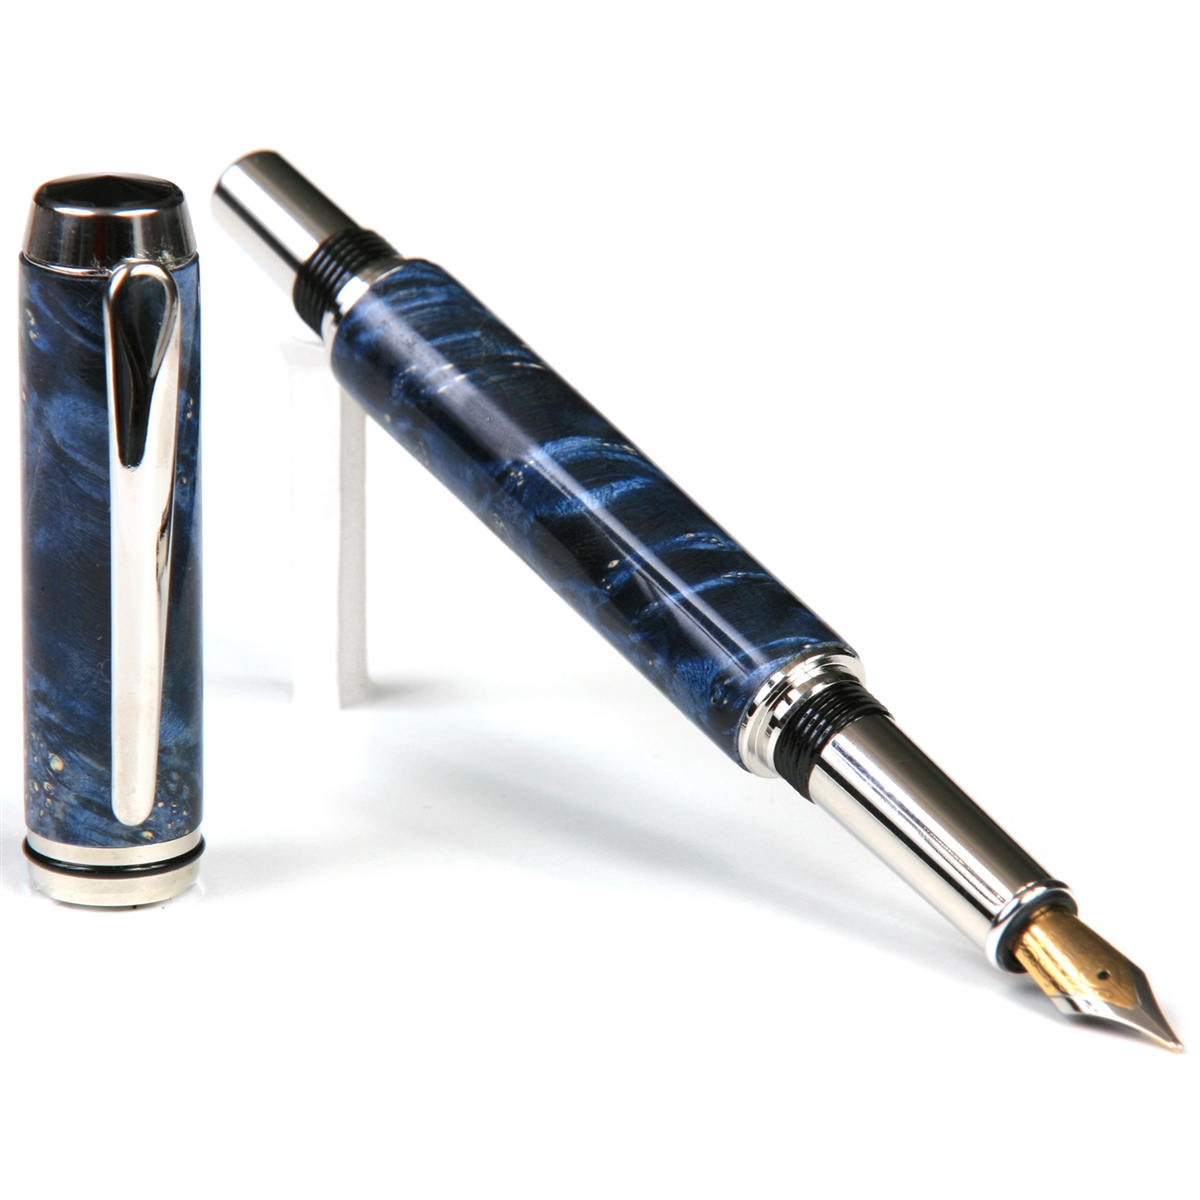 Baron Fountain Pen - Blue Box Elder